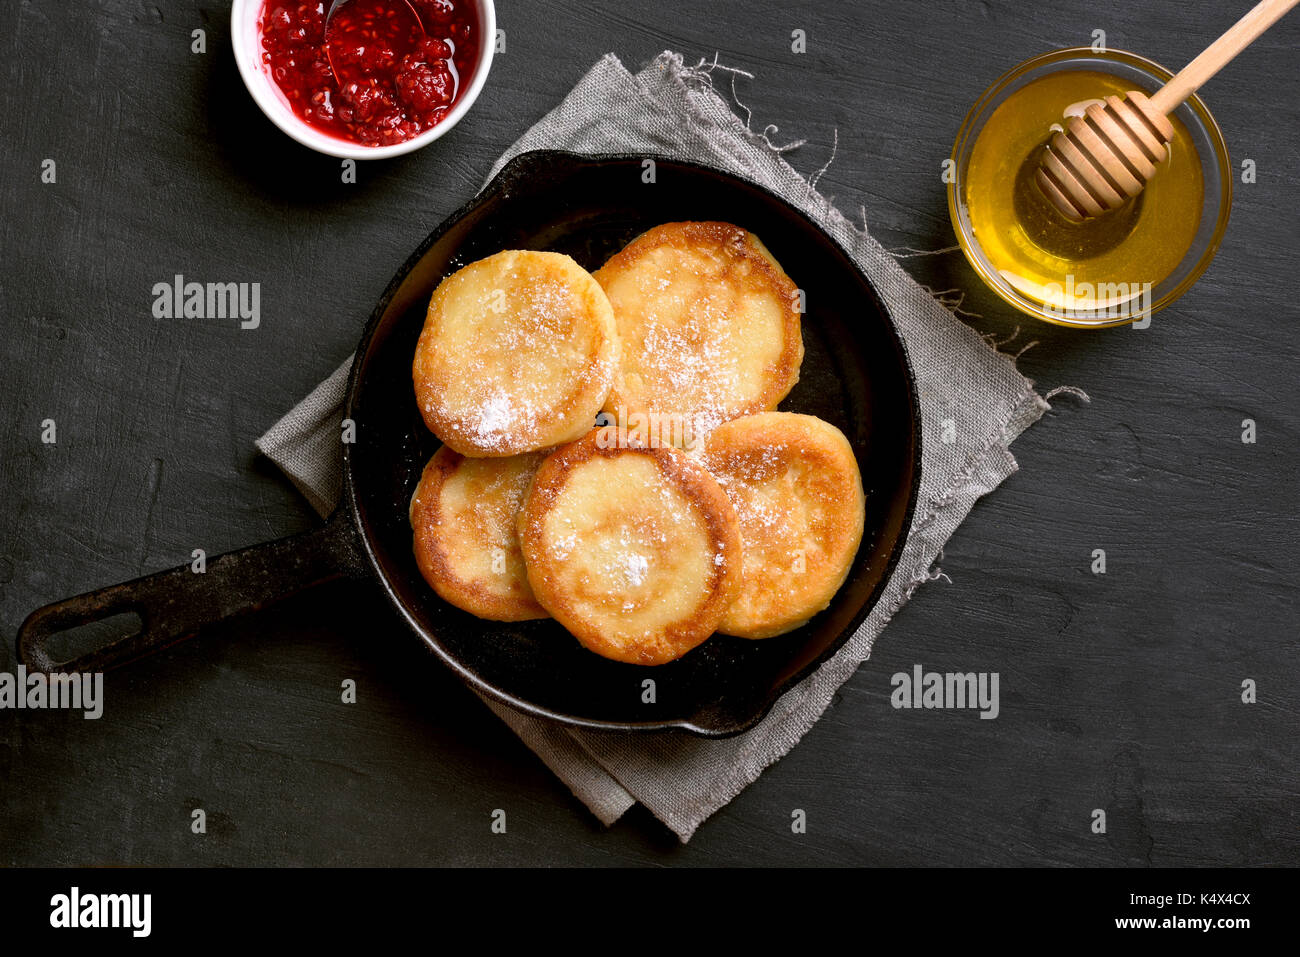 Fritters, curd cheese pancakes in cast iron pan on dark stone background, top view - Stock Image